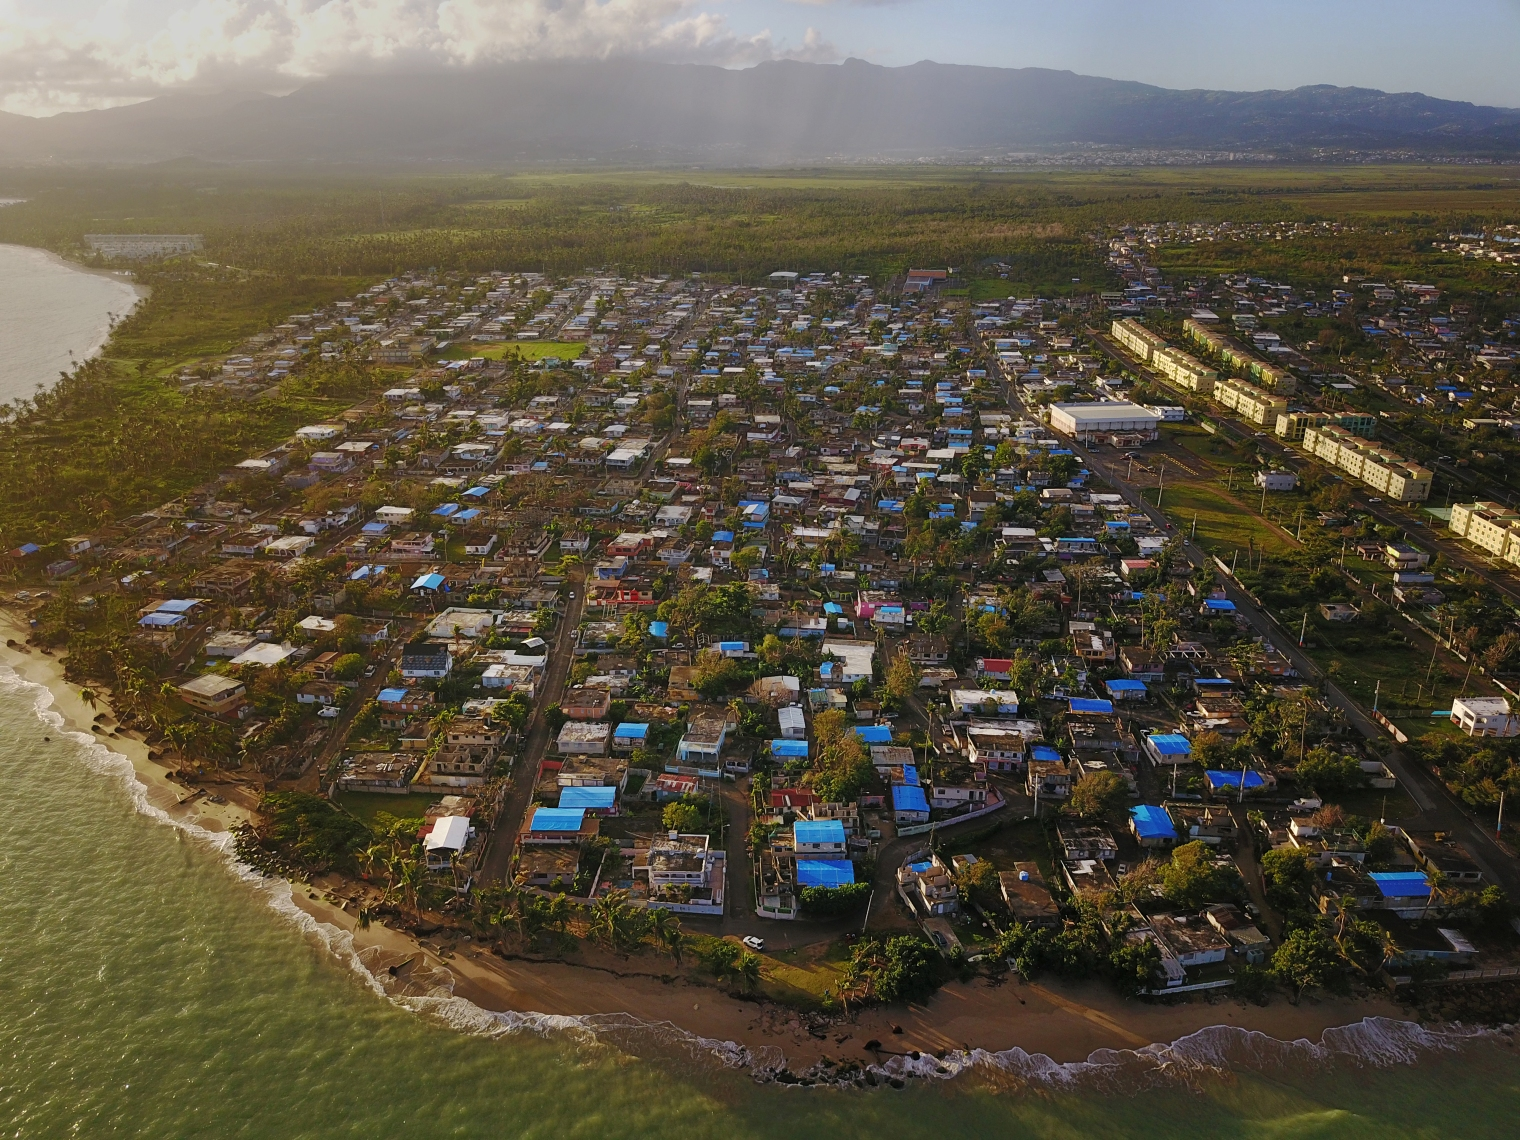 The coastal city of Loiza was hard hit by Hurricane Maria with a long-lasting power outage and water and food shortages.